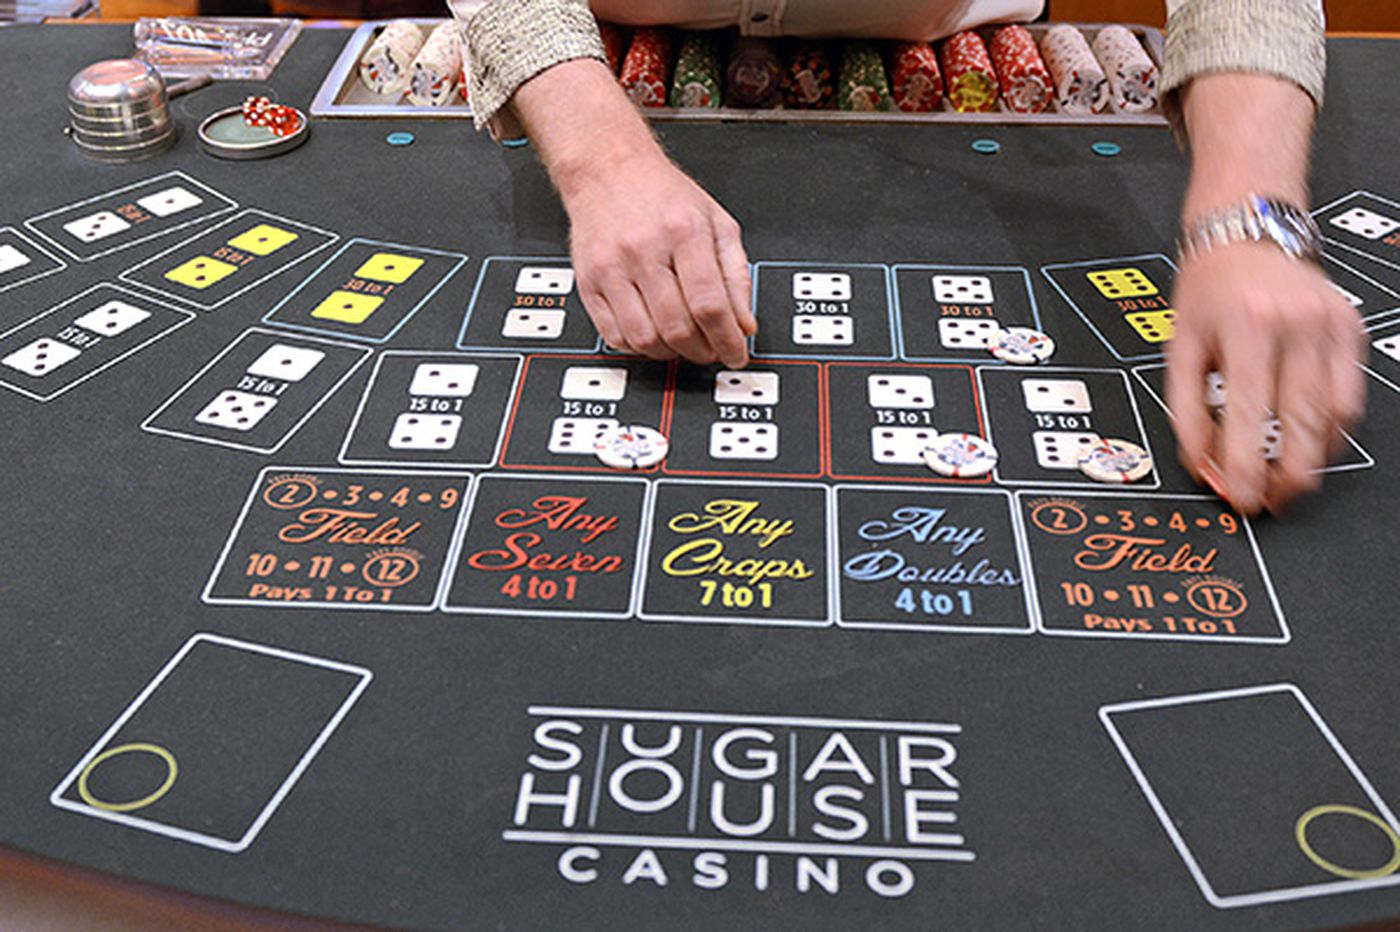 Gambling tax proposal would affect casinos and governments